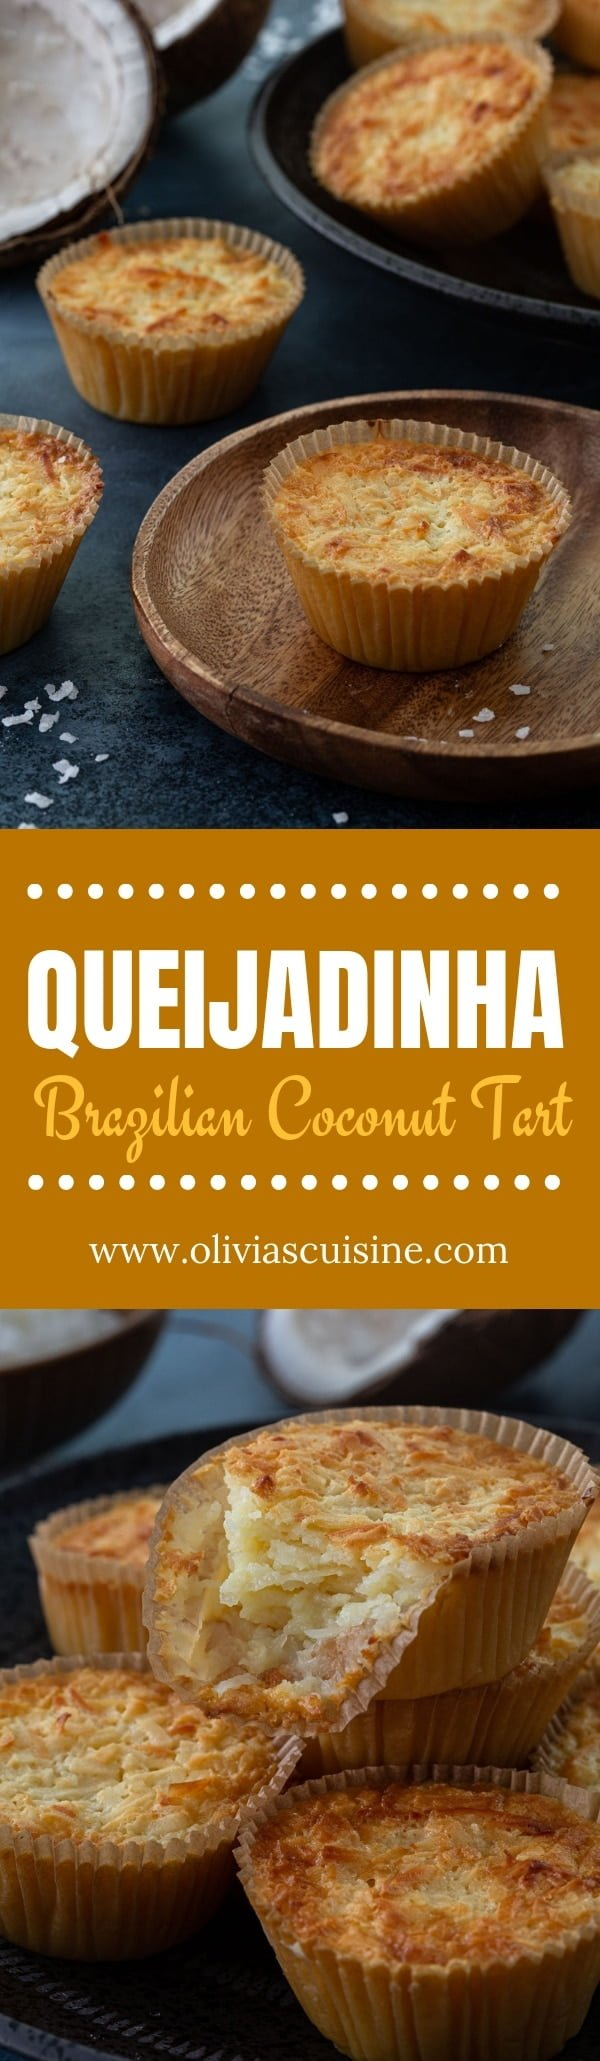 Queijadinhas (Brazilian Coconut Custard Tarts) | www.oliviascuisine.com | It is impossible not to fall in love with a Queijadinha. Decadent, creamy and loaded with coconut, it is a sweet tooth's dream come true! (Recipe and food photography by @oliviascuisine.)